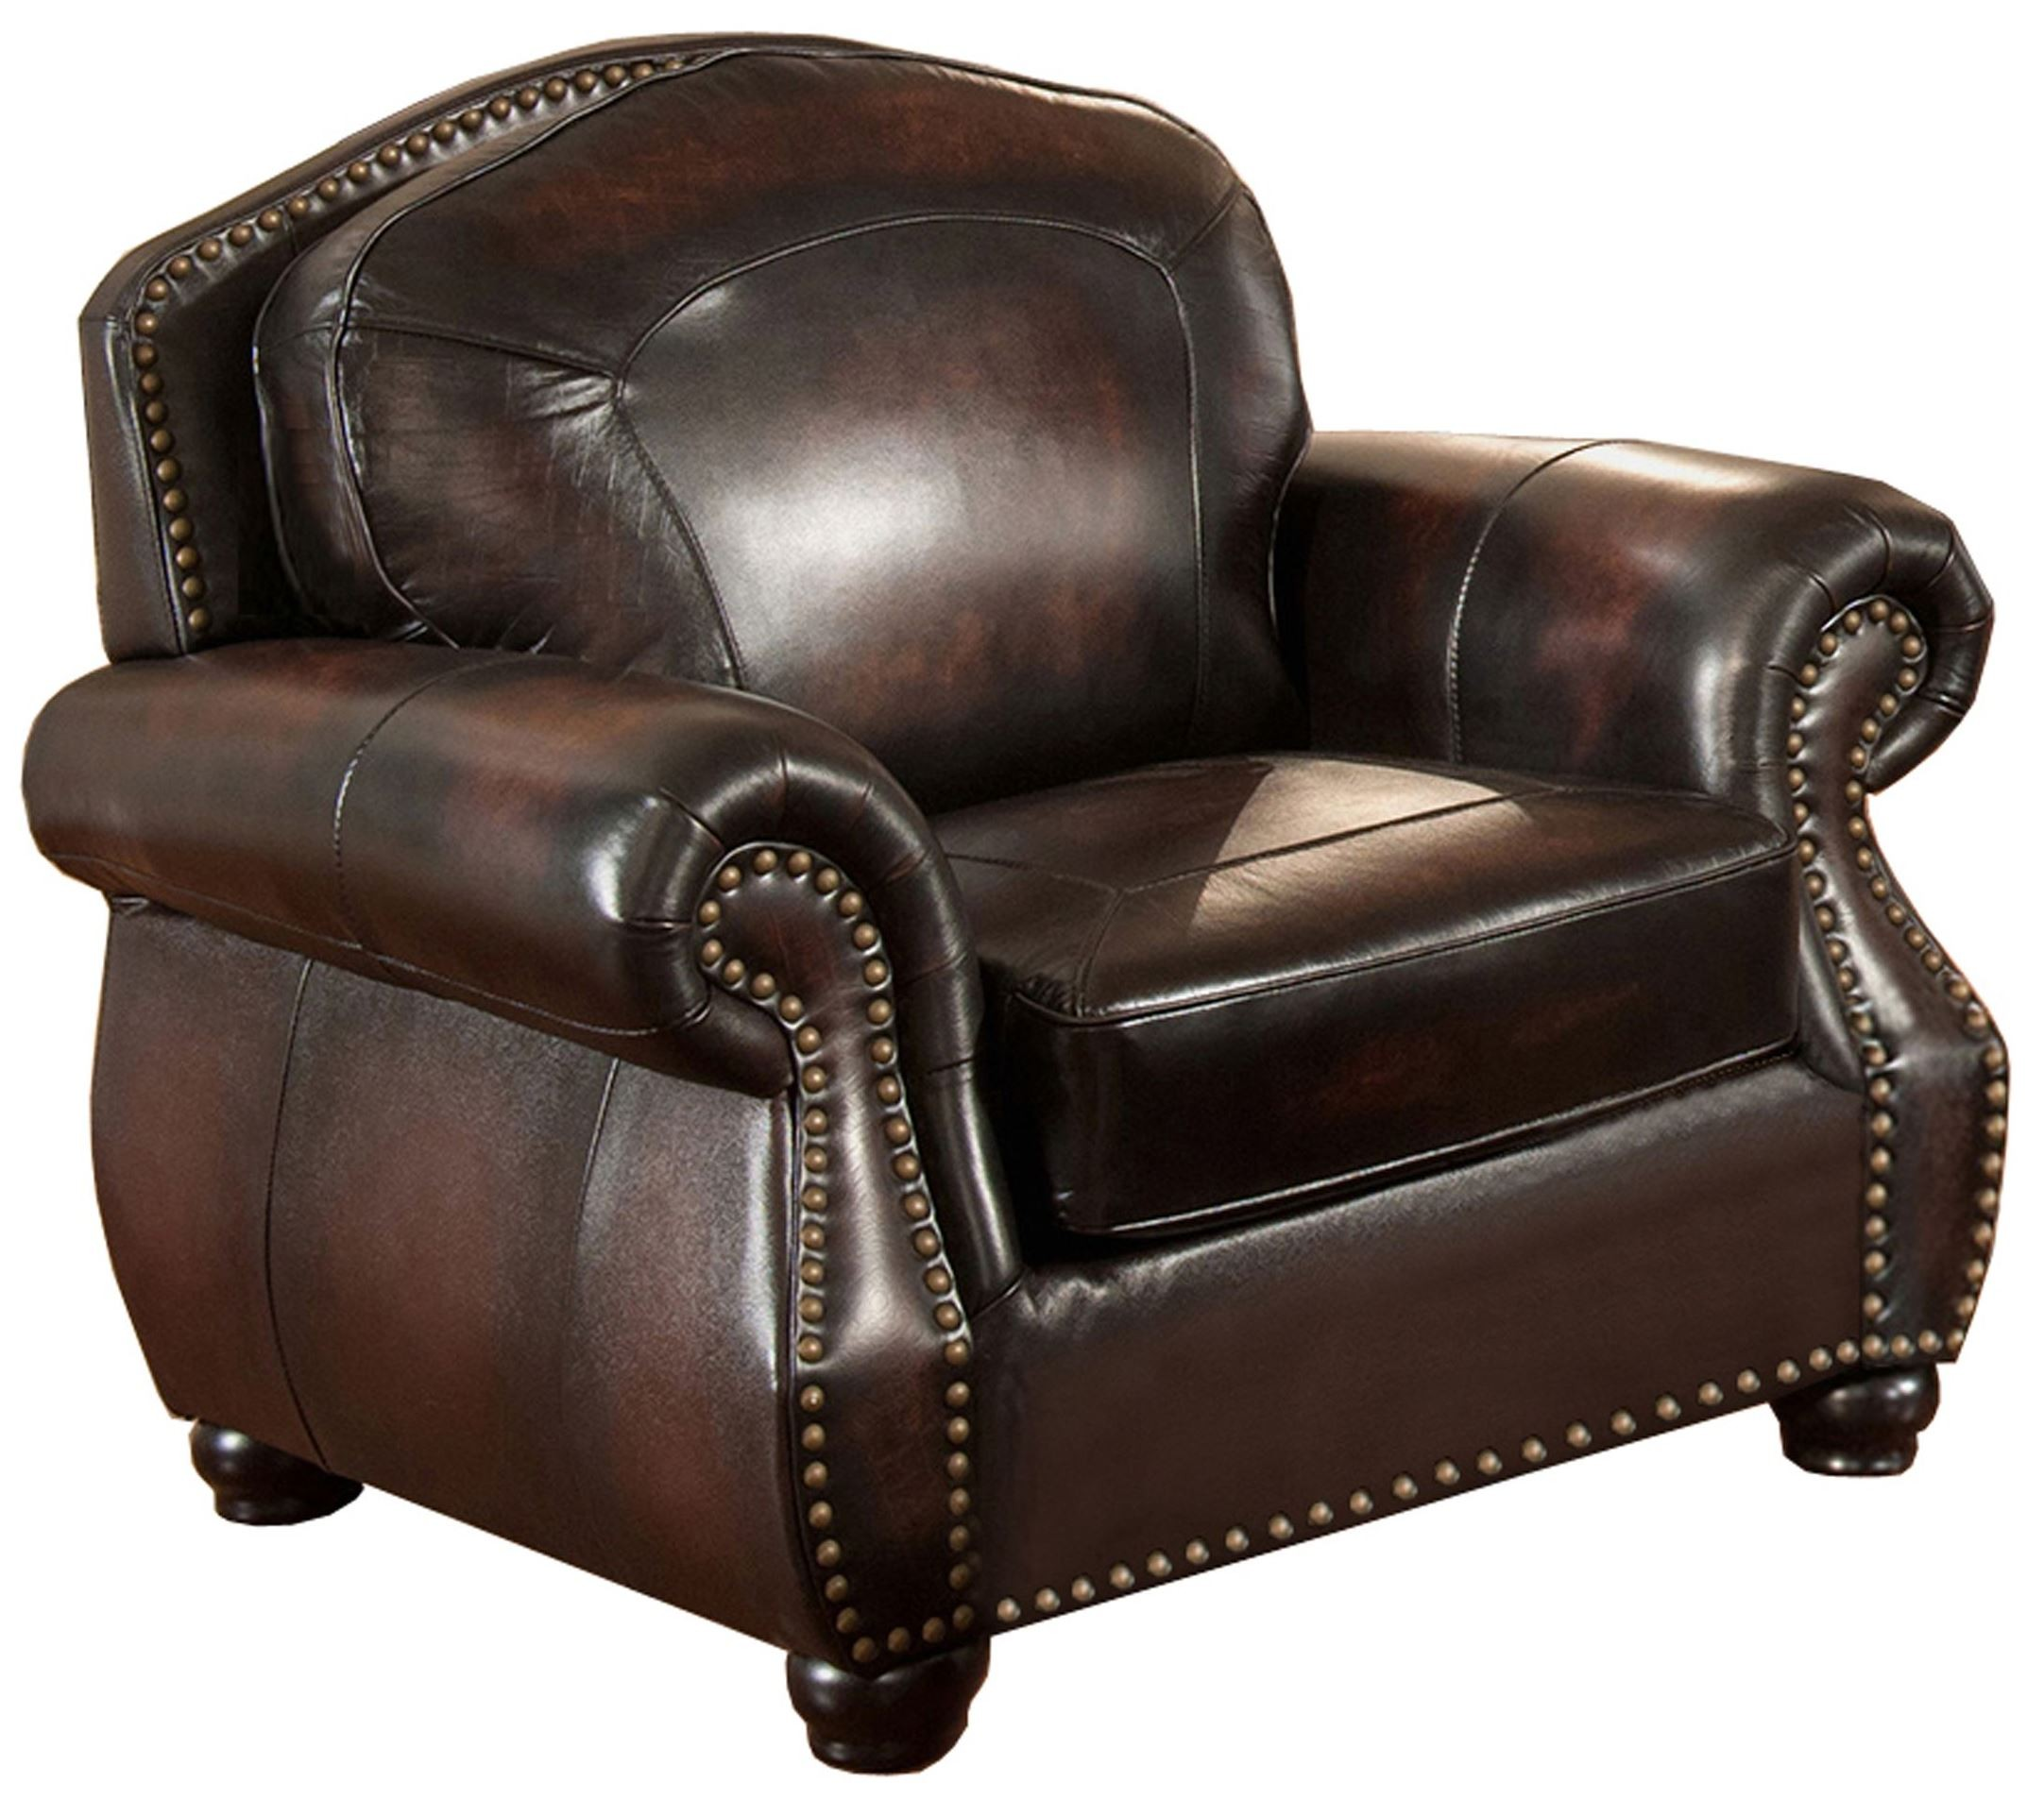 Hyde Brown Leather Armchair, C9701C2889LS, Amax Leather